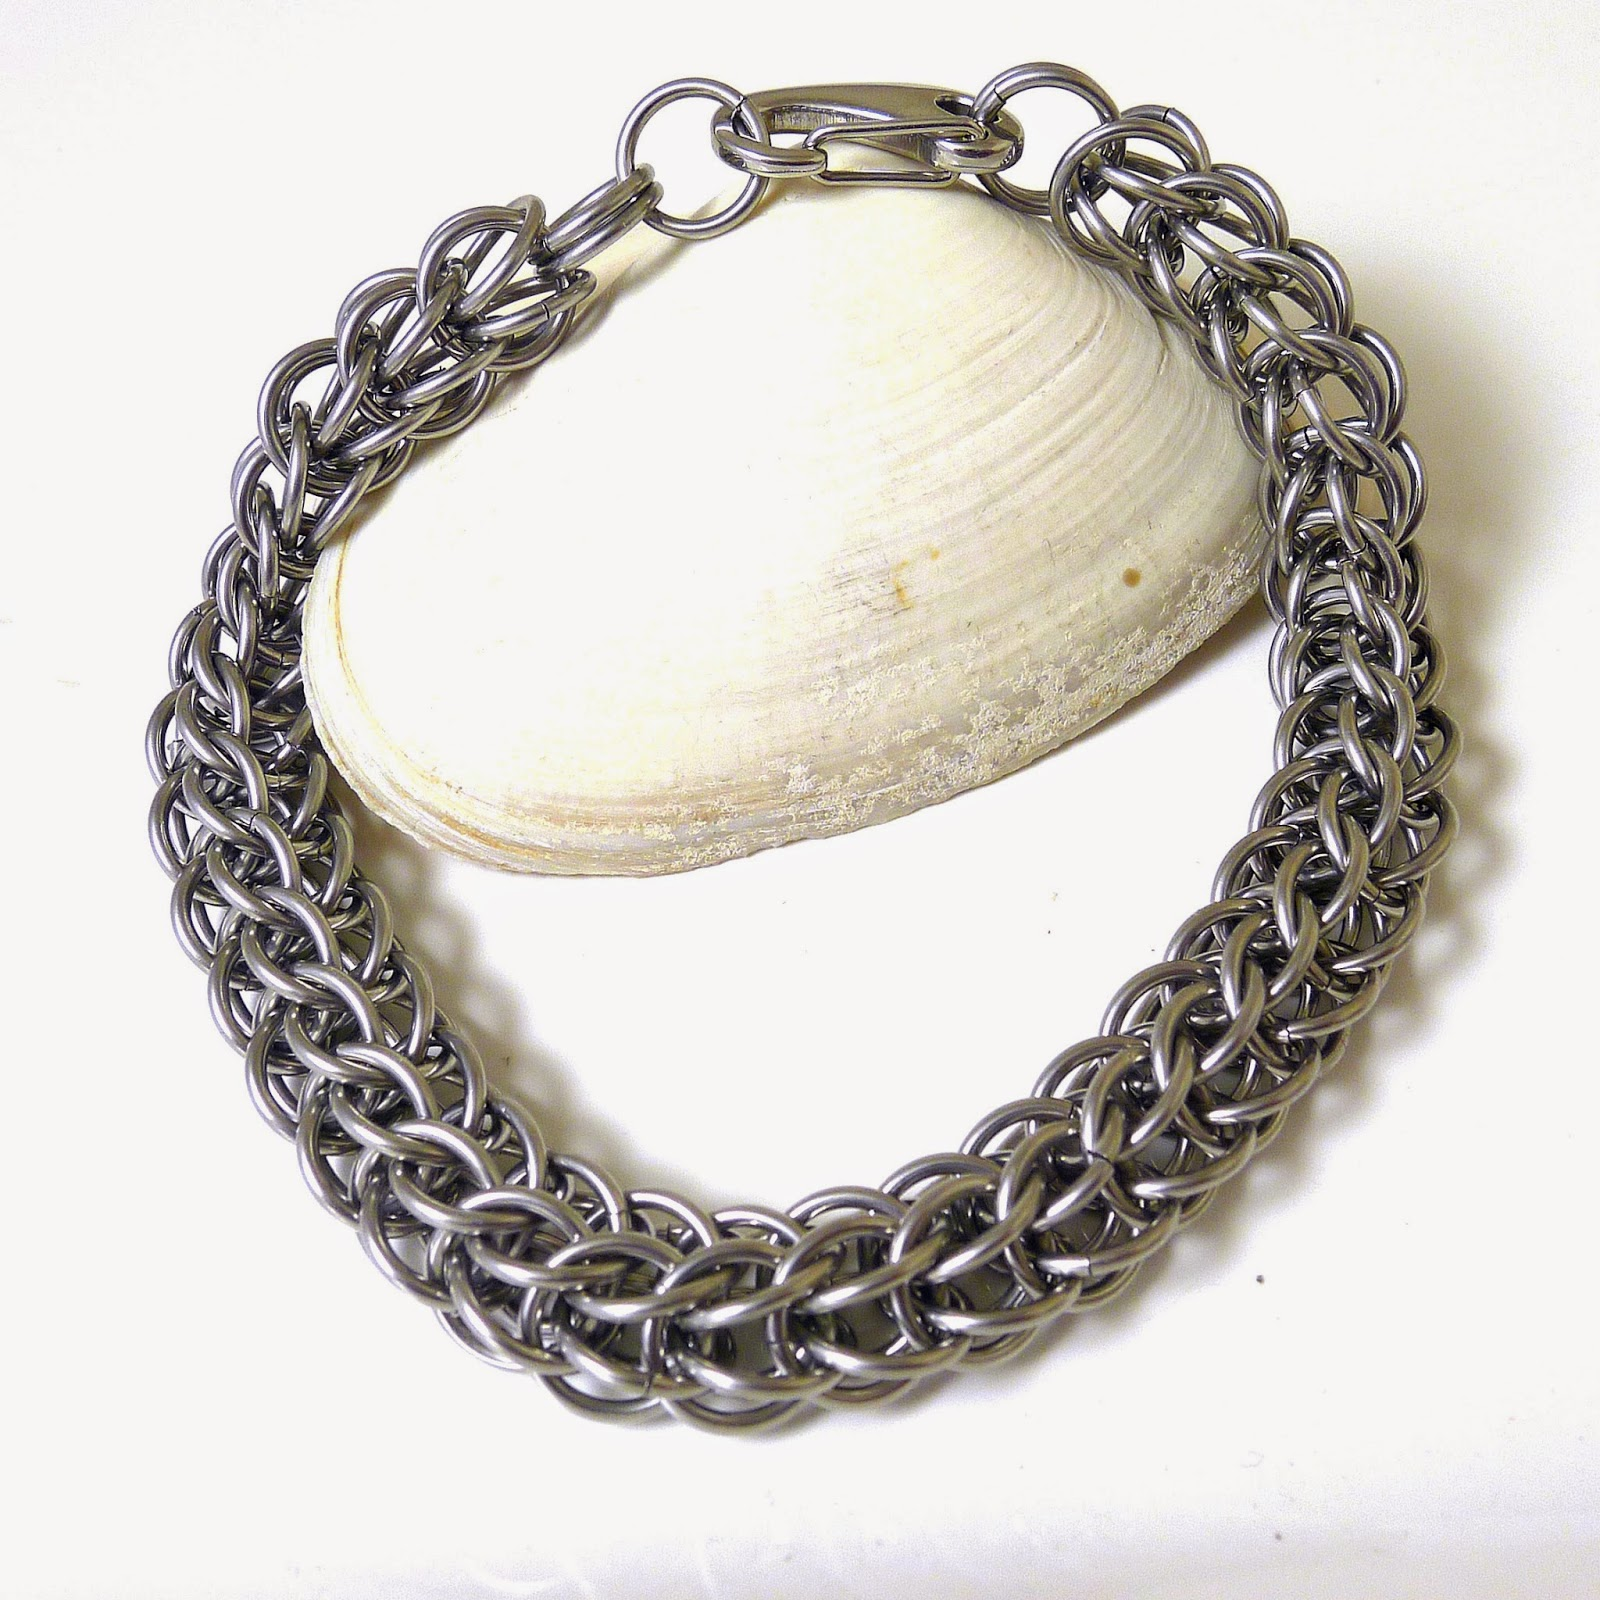 http://www.shazzabethcreations.co.nz/#!product/prd1/2699259551/men%27s-stainless-steel-persian-chainmaille-bracelet